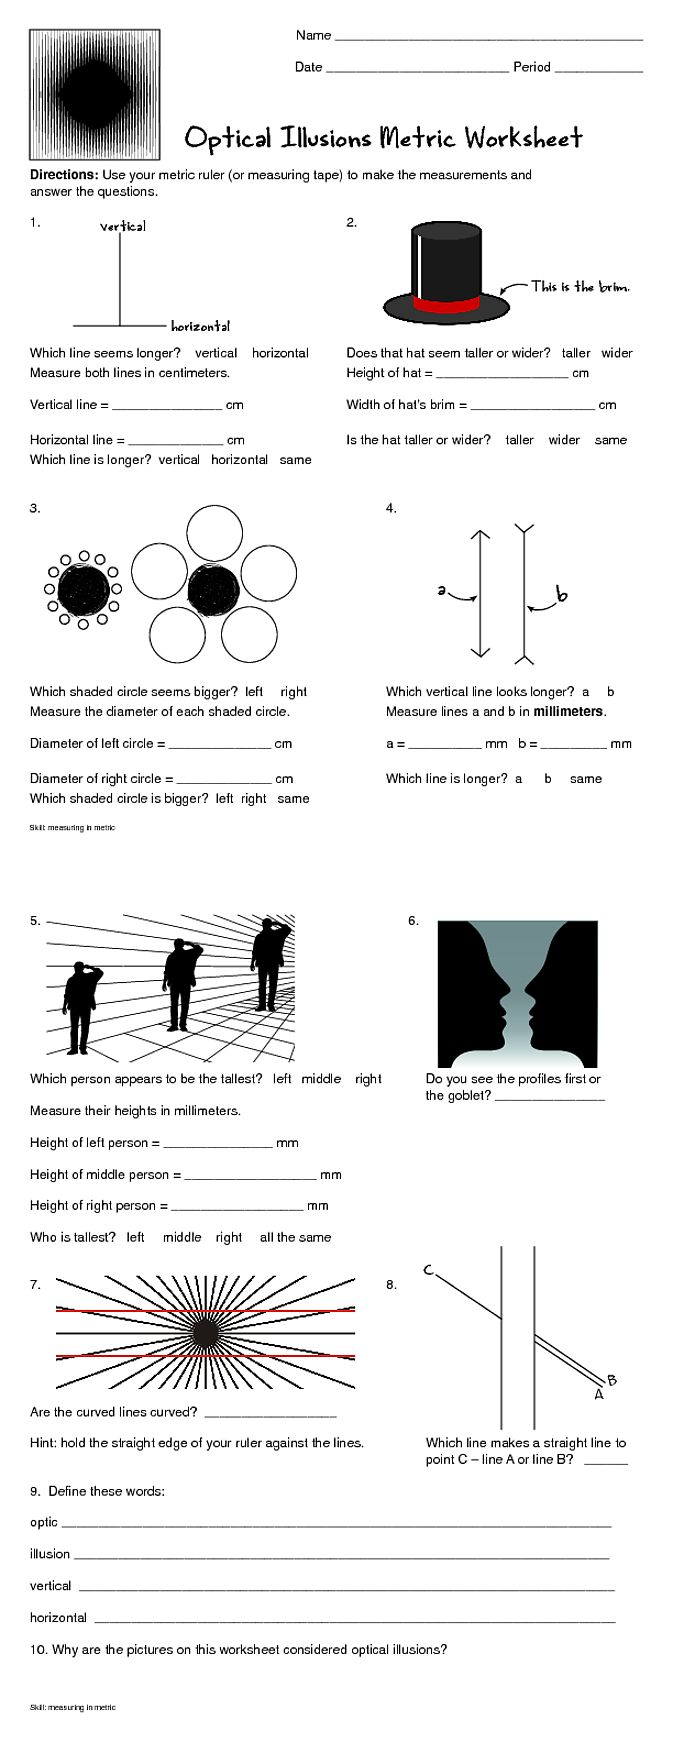 Worksheets Optical Illusion Worksheets 17 best ideas about optical illusions for kids on pinterest op art oleg shuplyak and necker cube